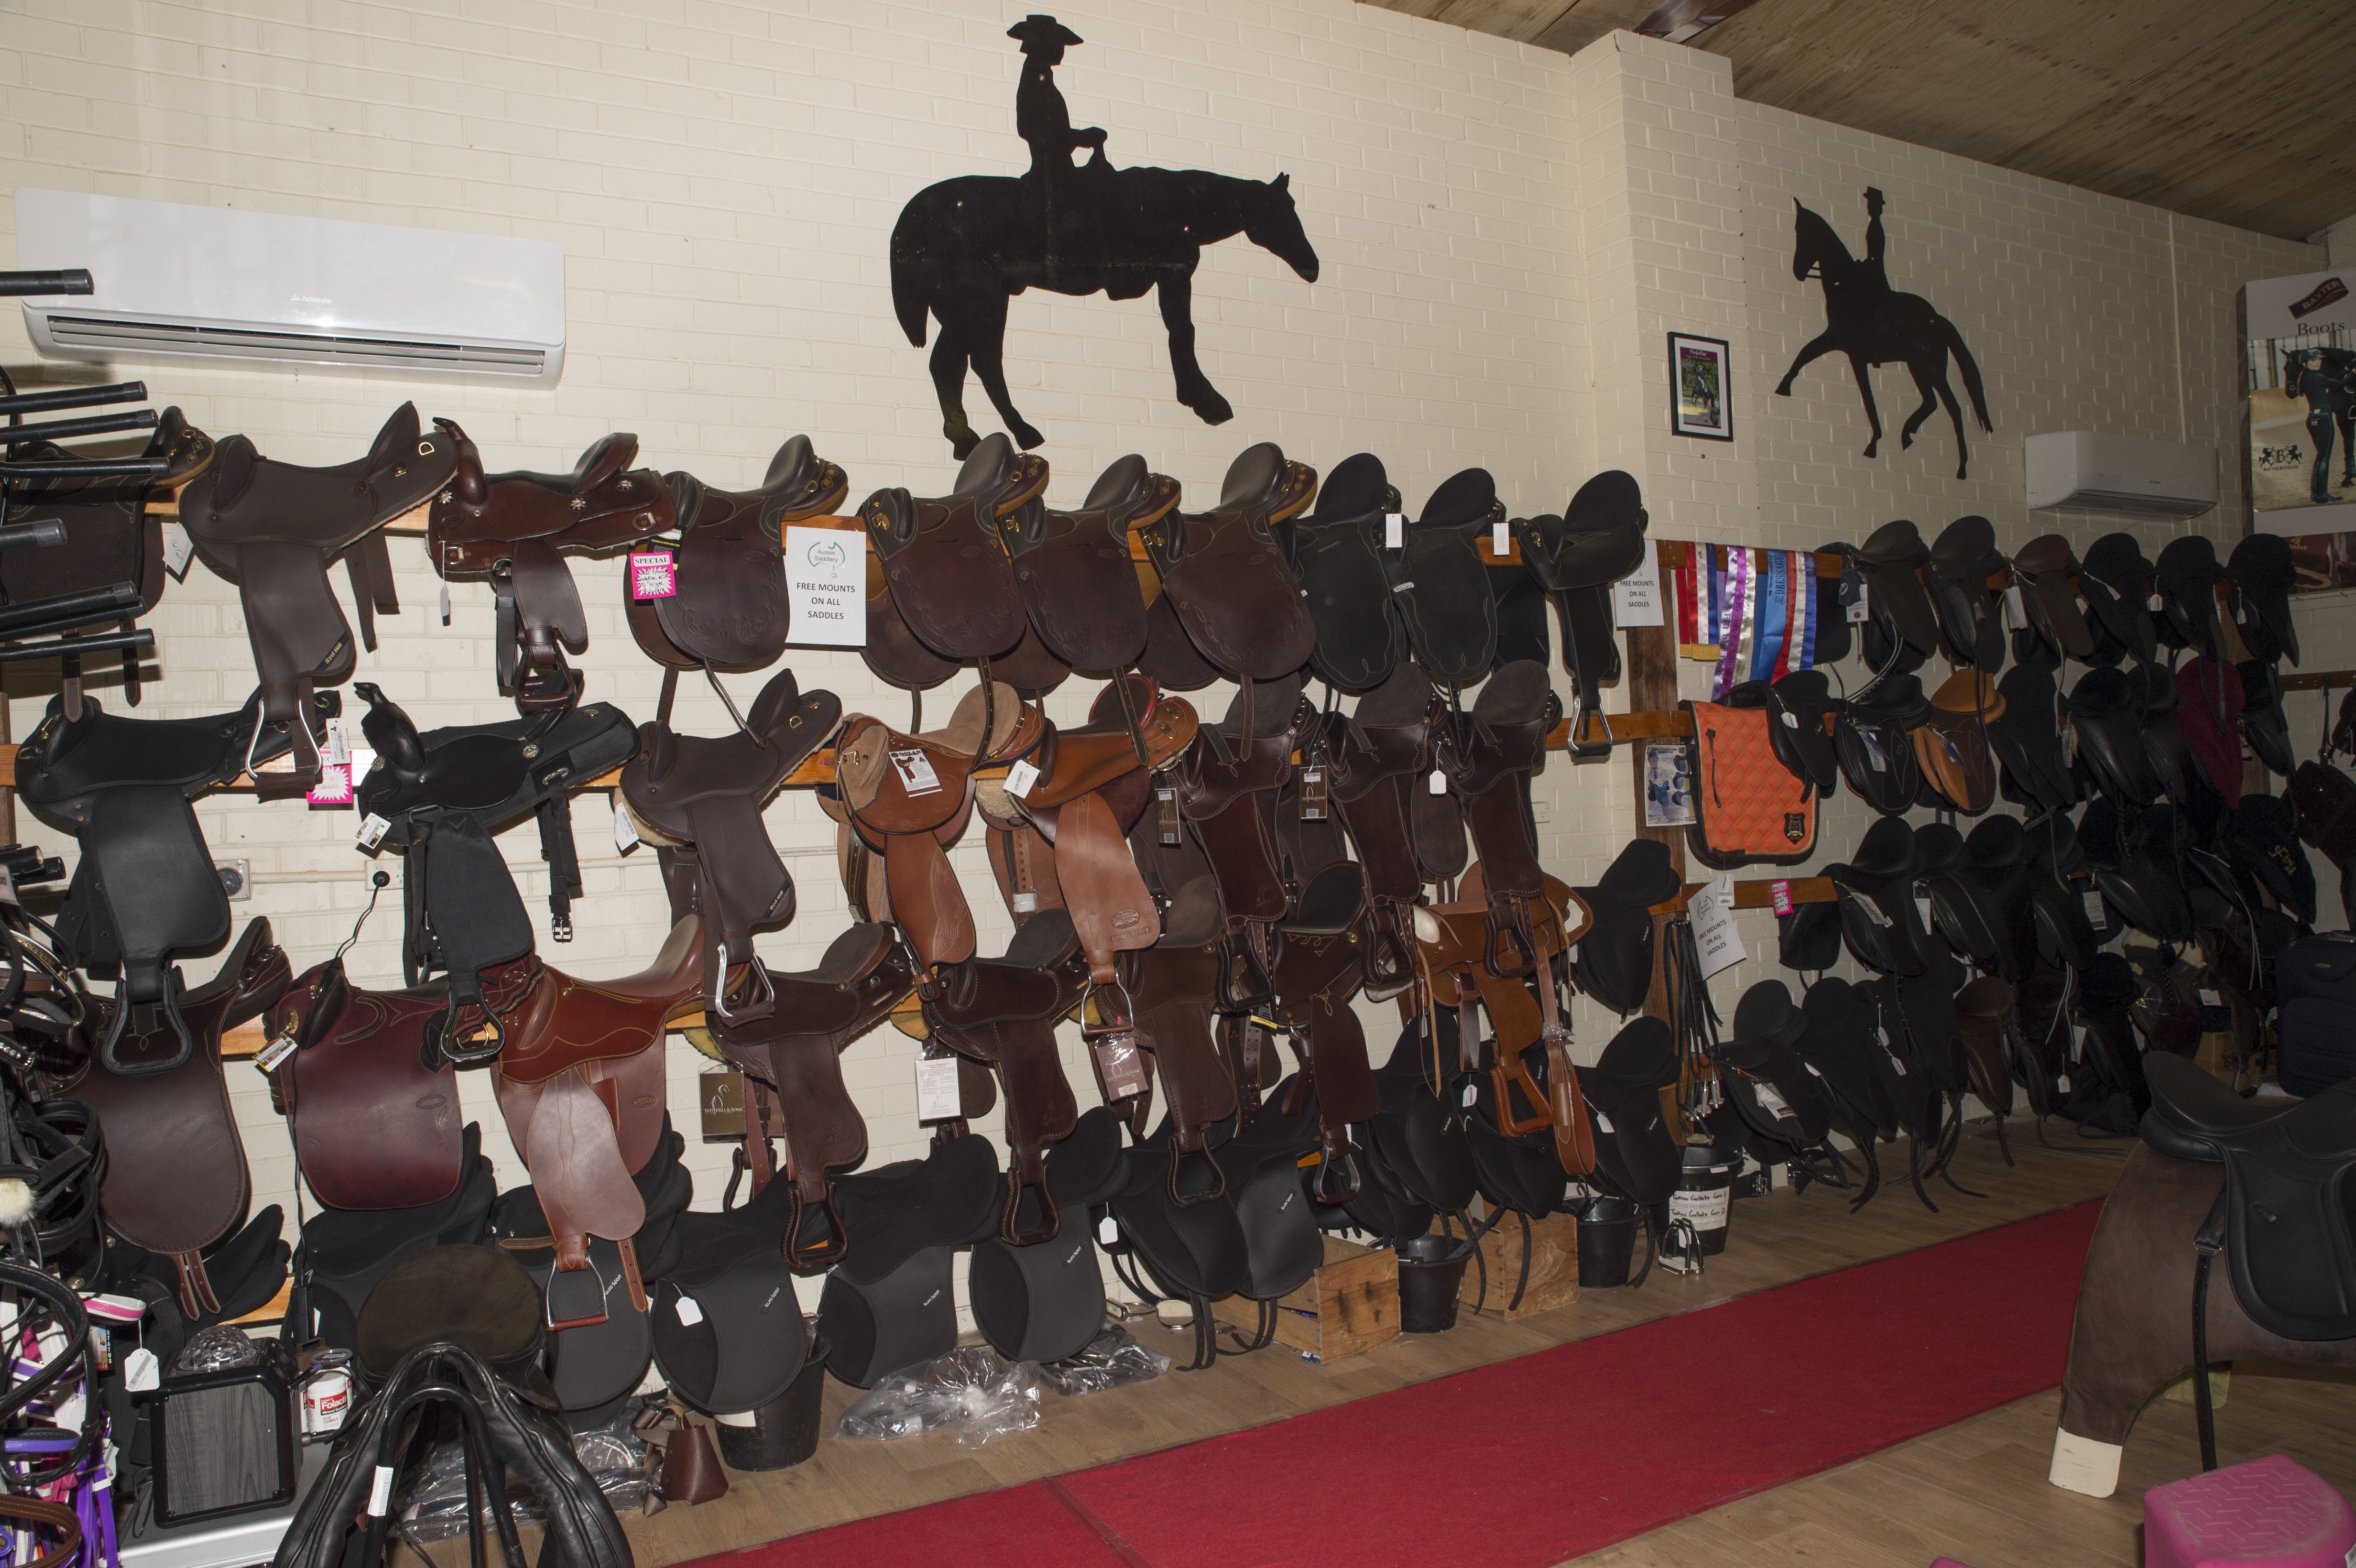 aussie-saddlery-09092017-37-of-152-.jpg